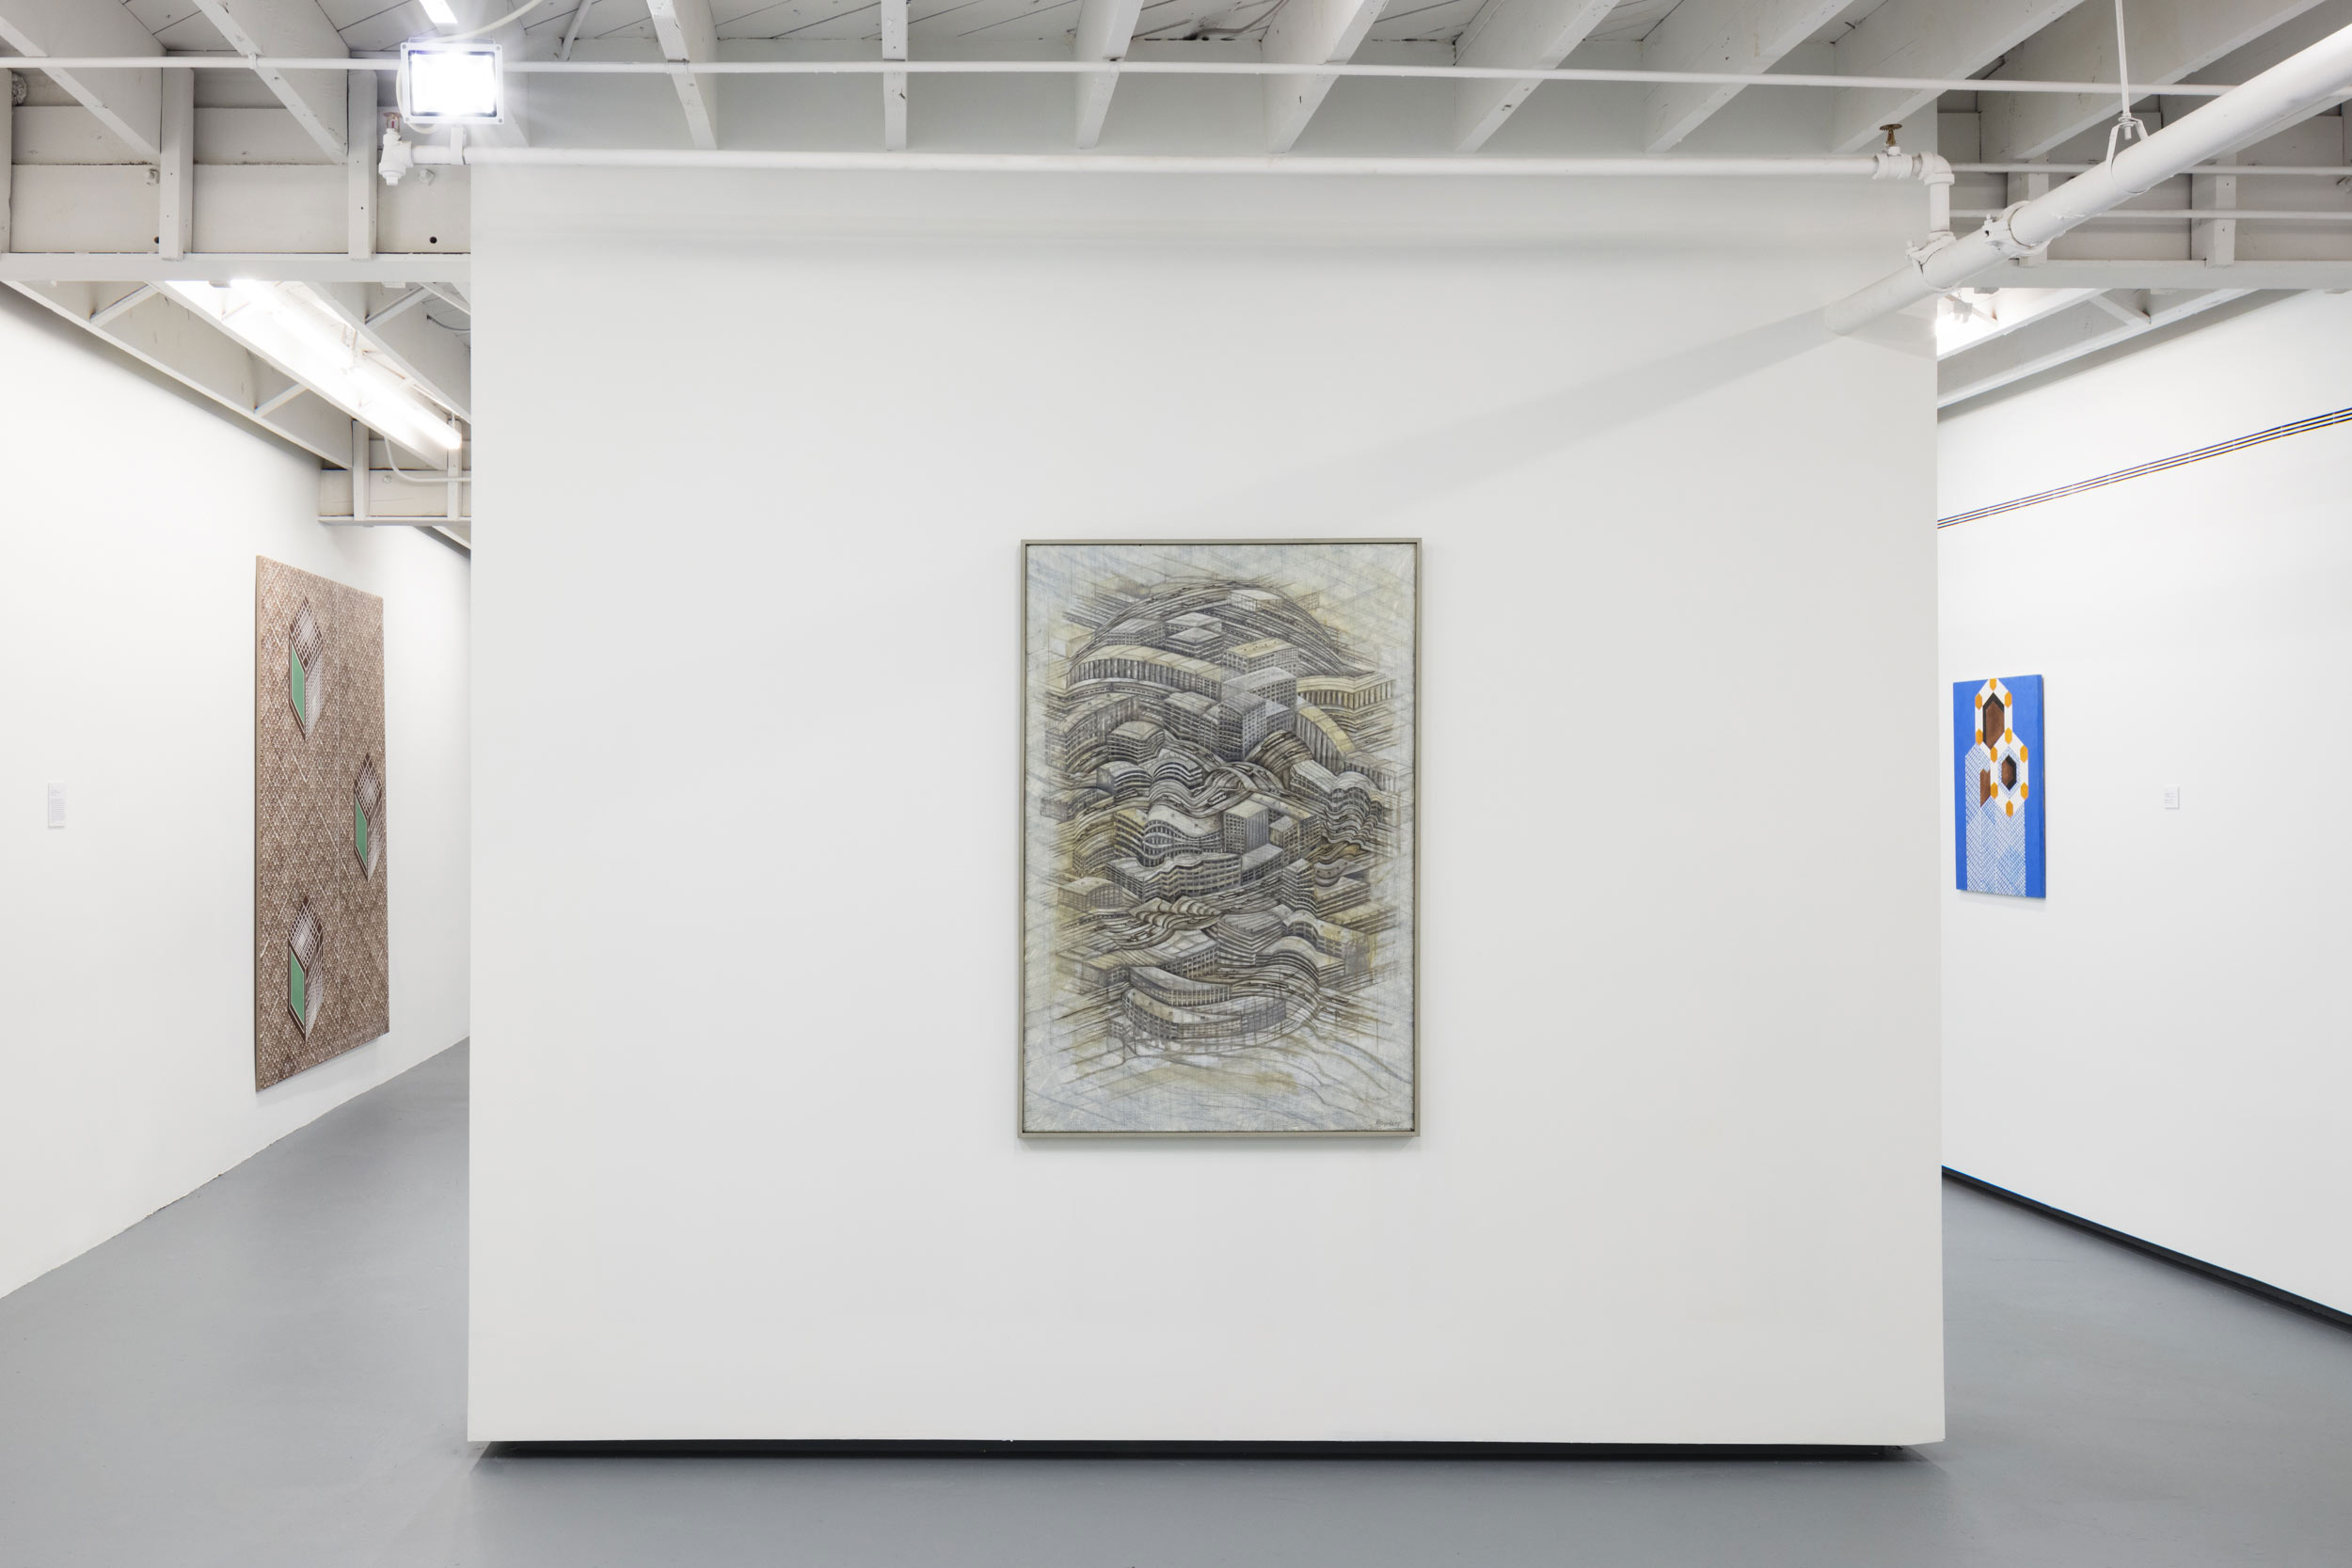 Installation view: Thomas Bayrle